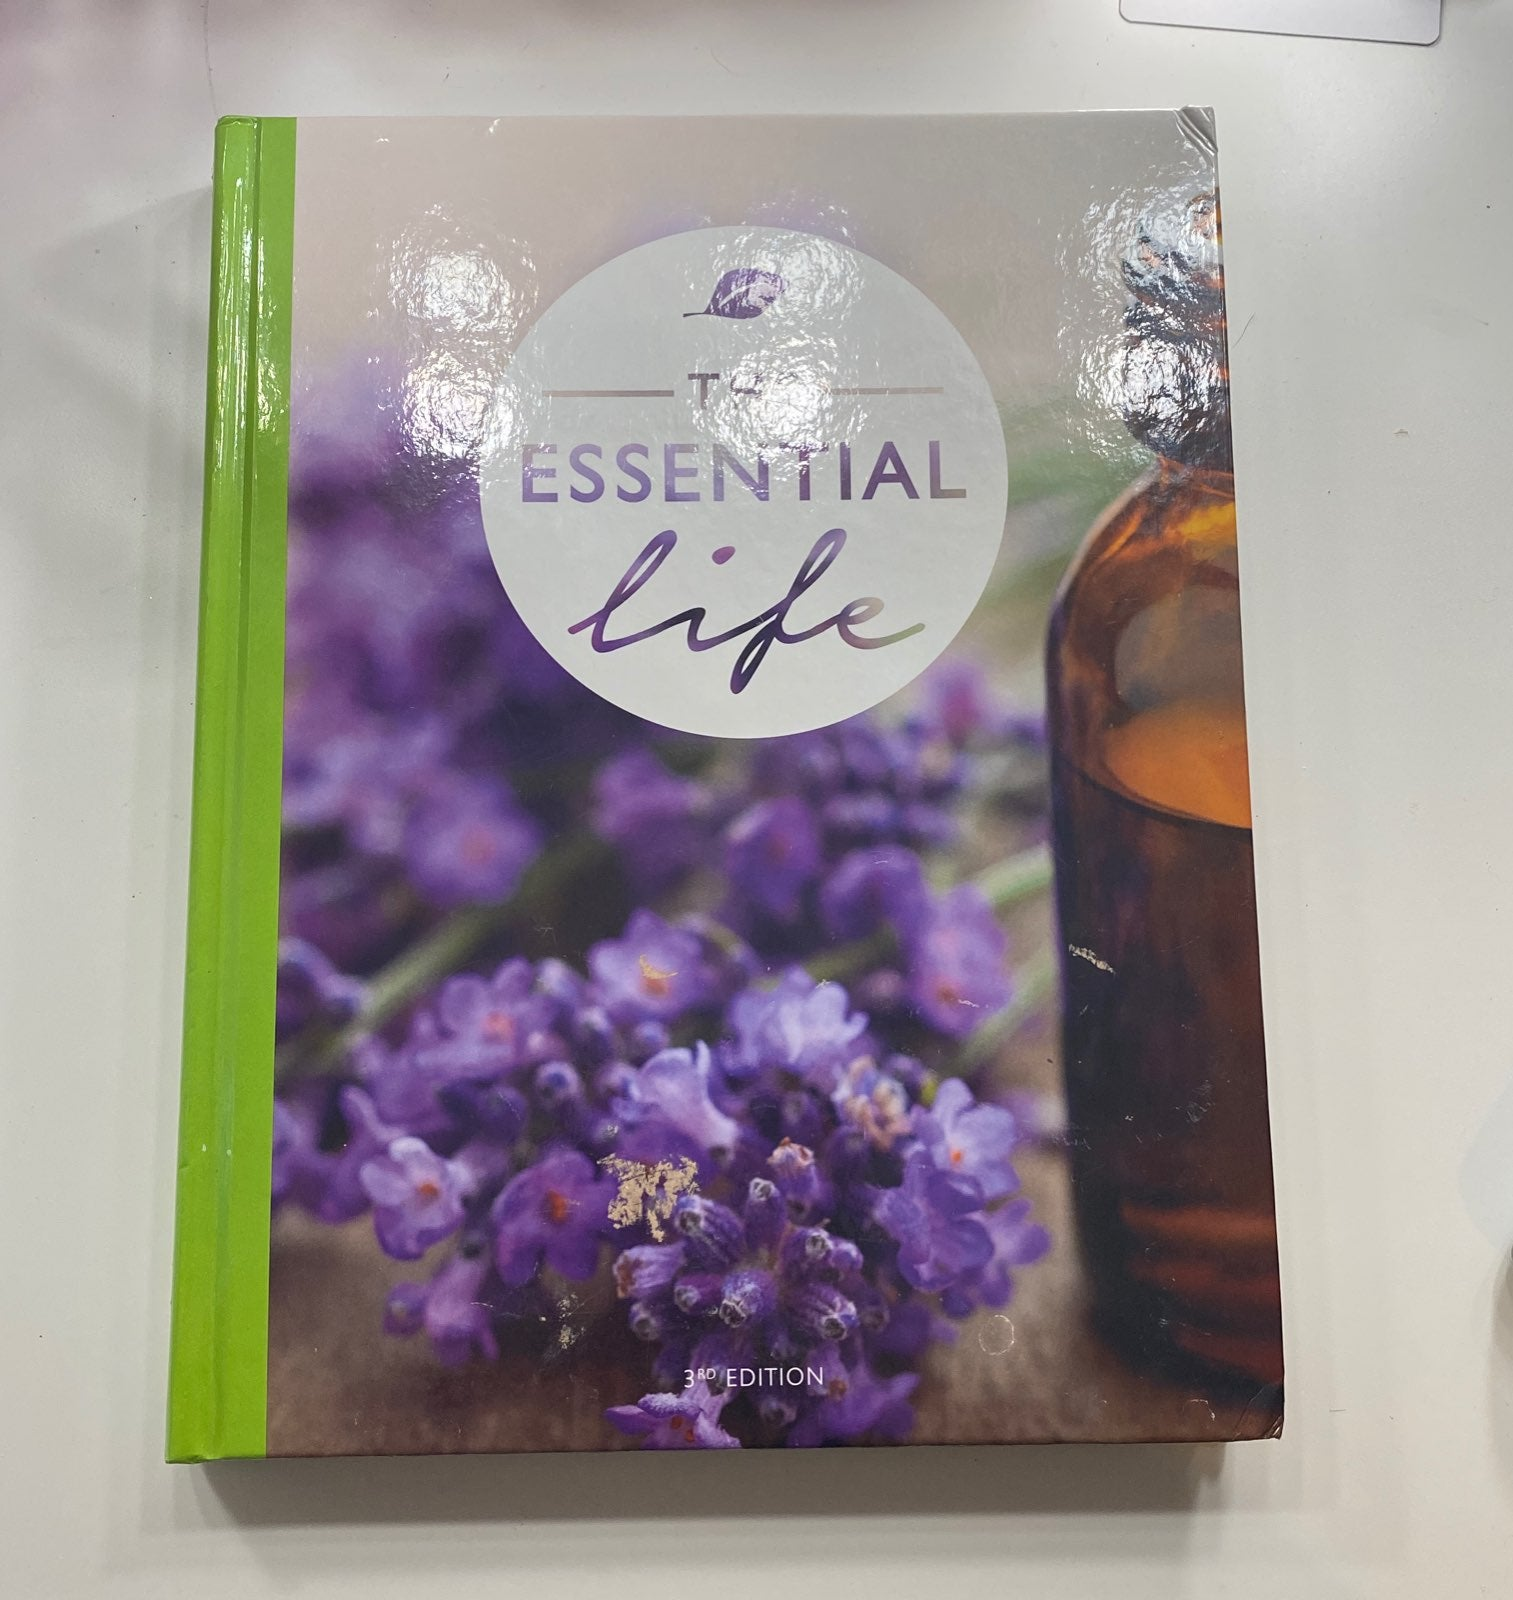 The Essential Life 2015 Doterra Book 3rd